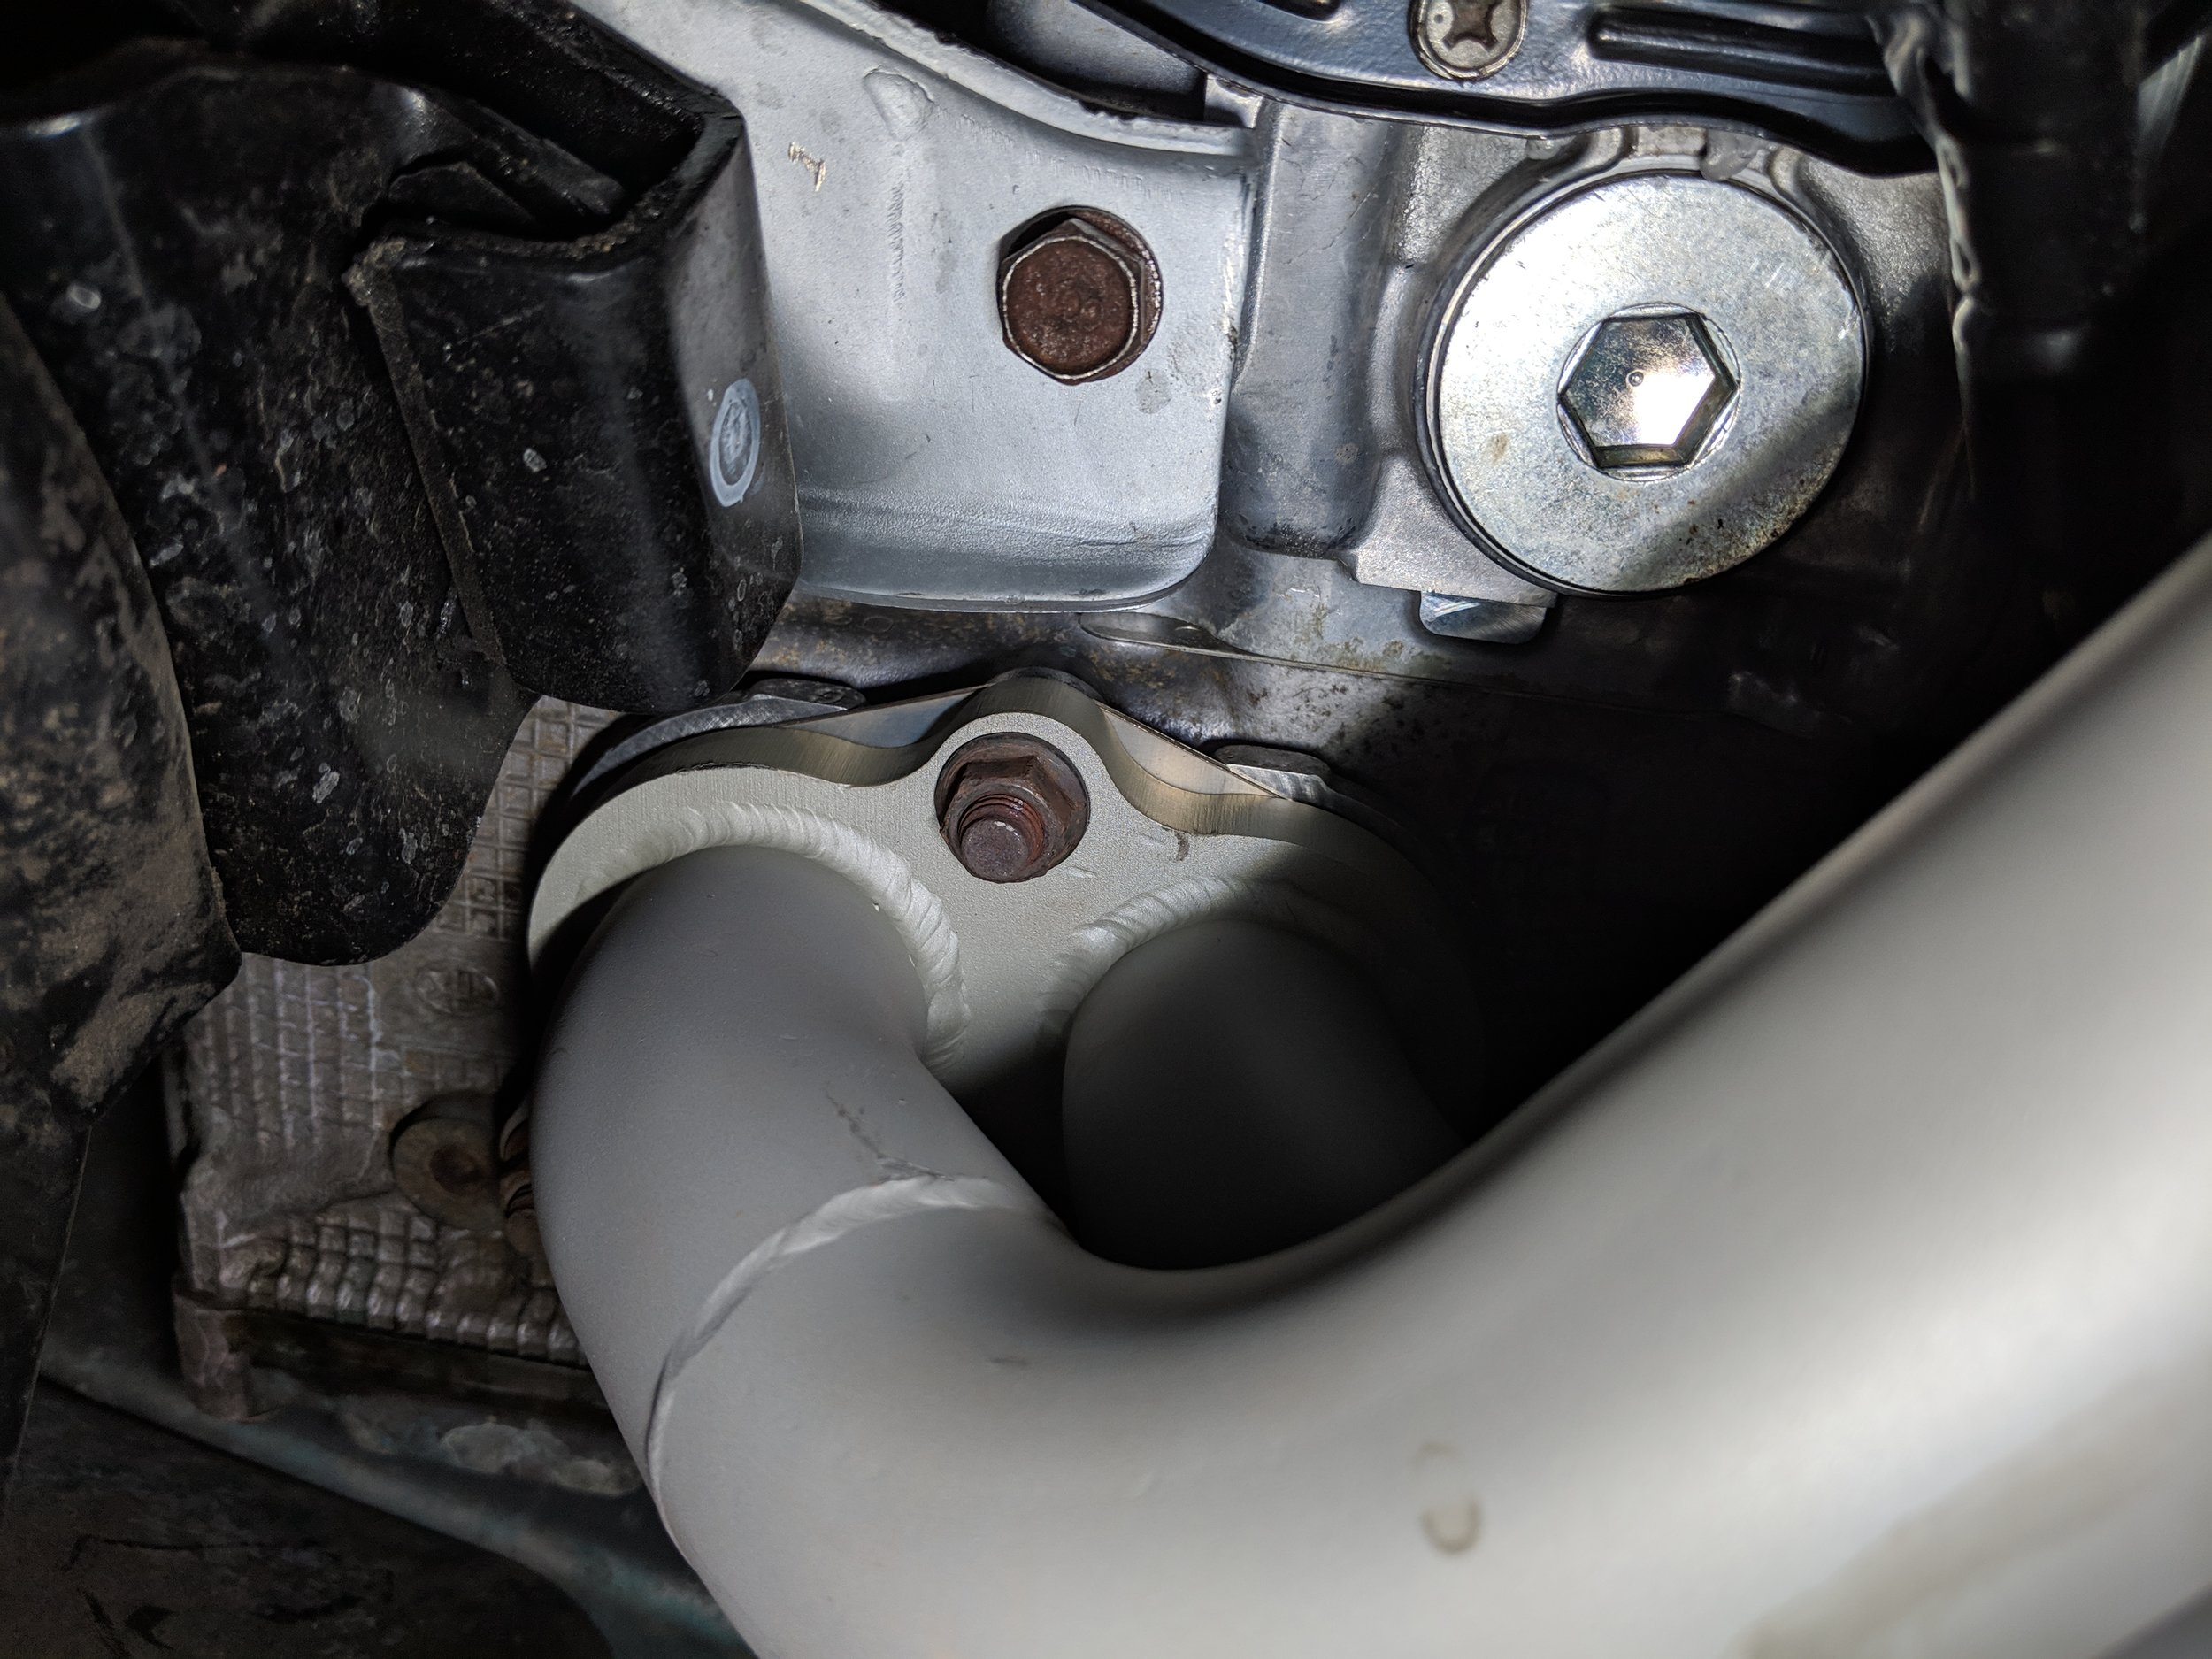 The driver side exhaust manifold nuts are easier to spot. Less wild bends in the exhaust paths.